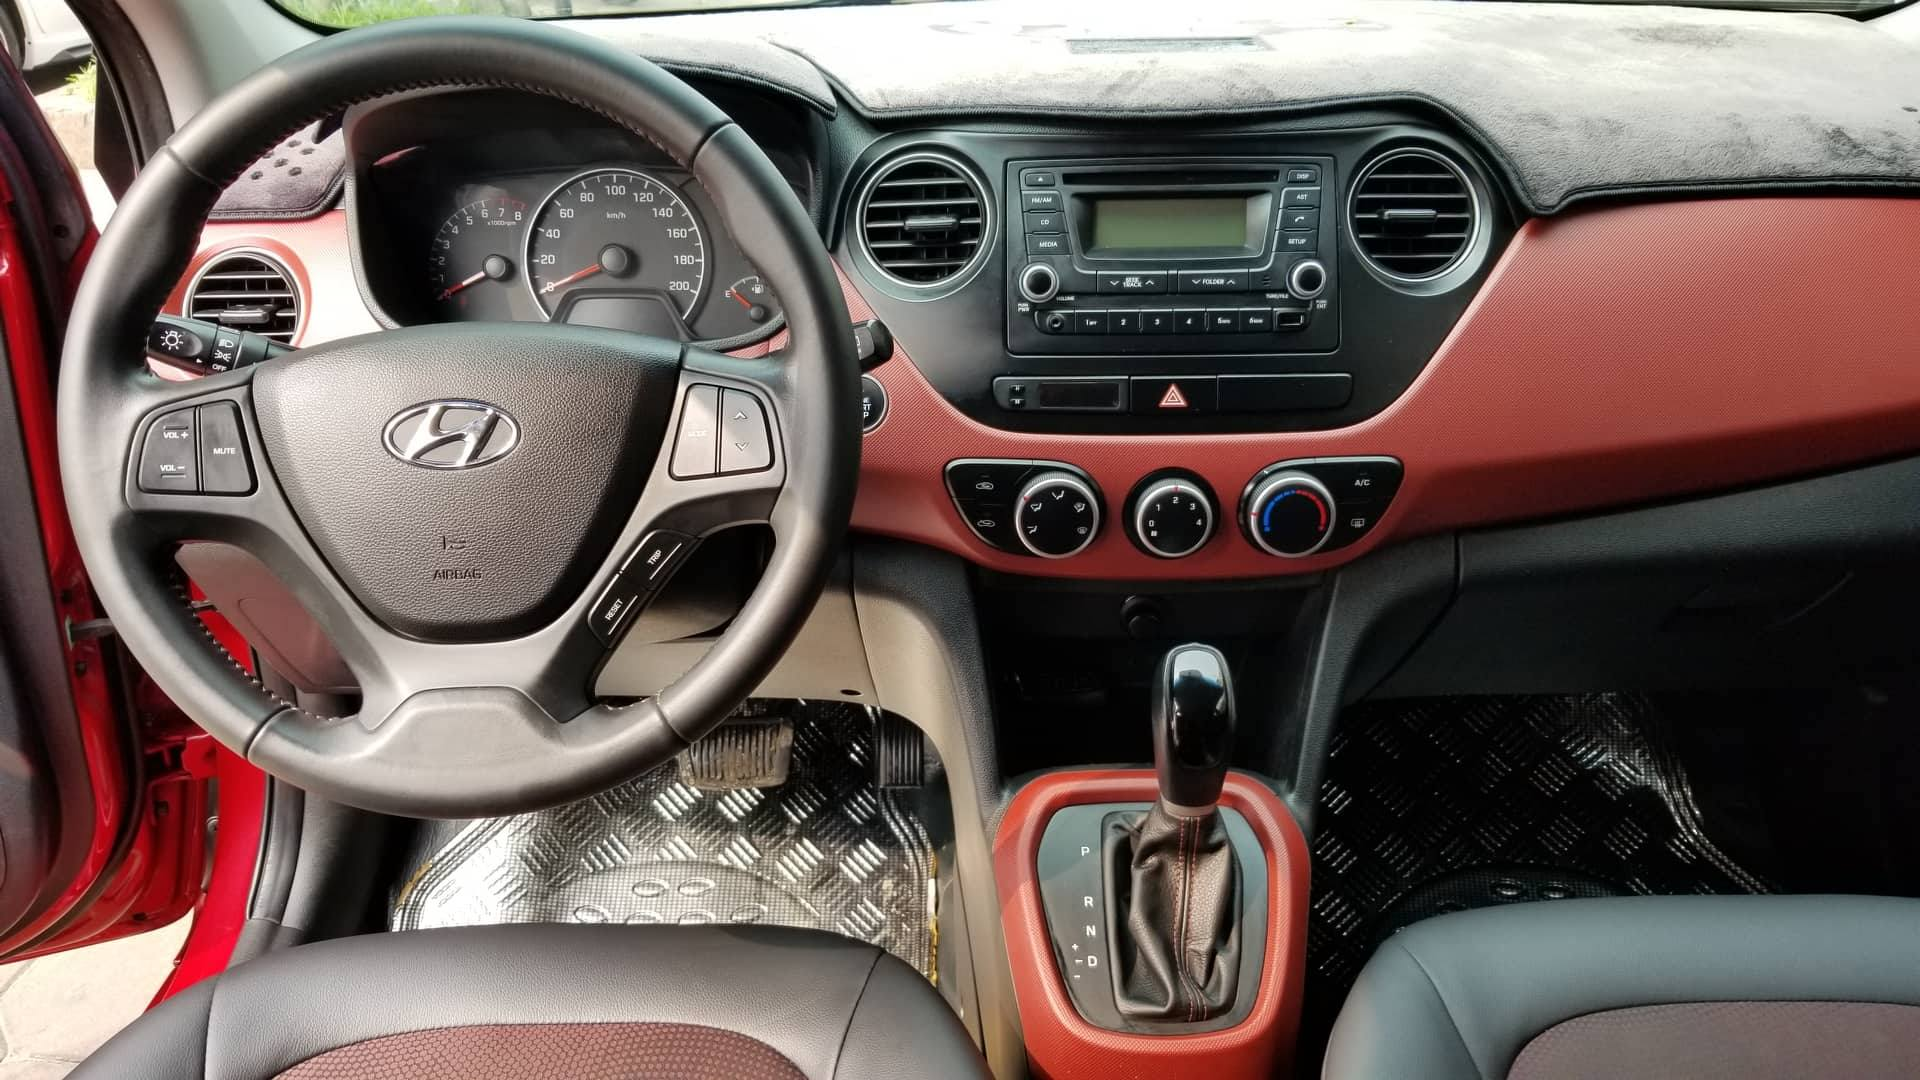 Hyundai i10 Hatchback 1.2AT 2015 - 7